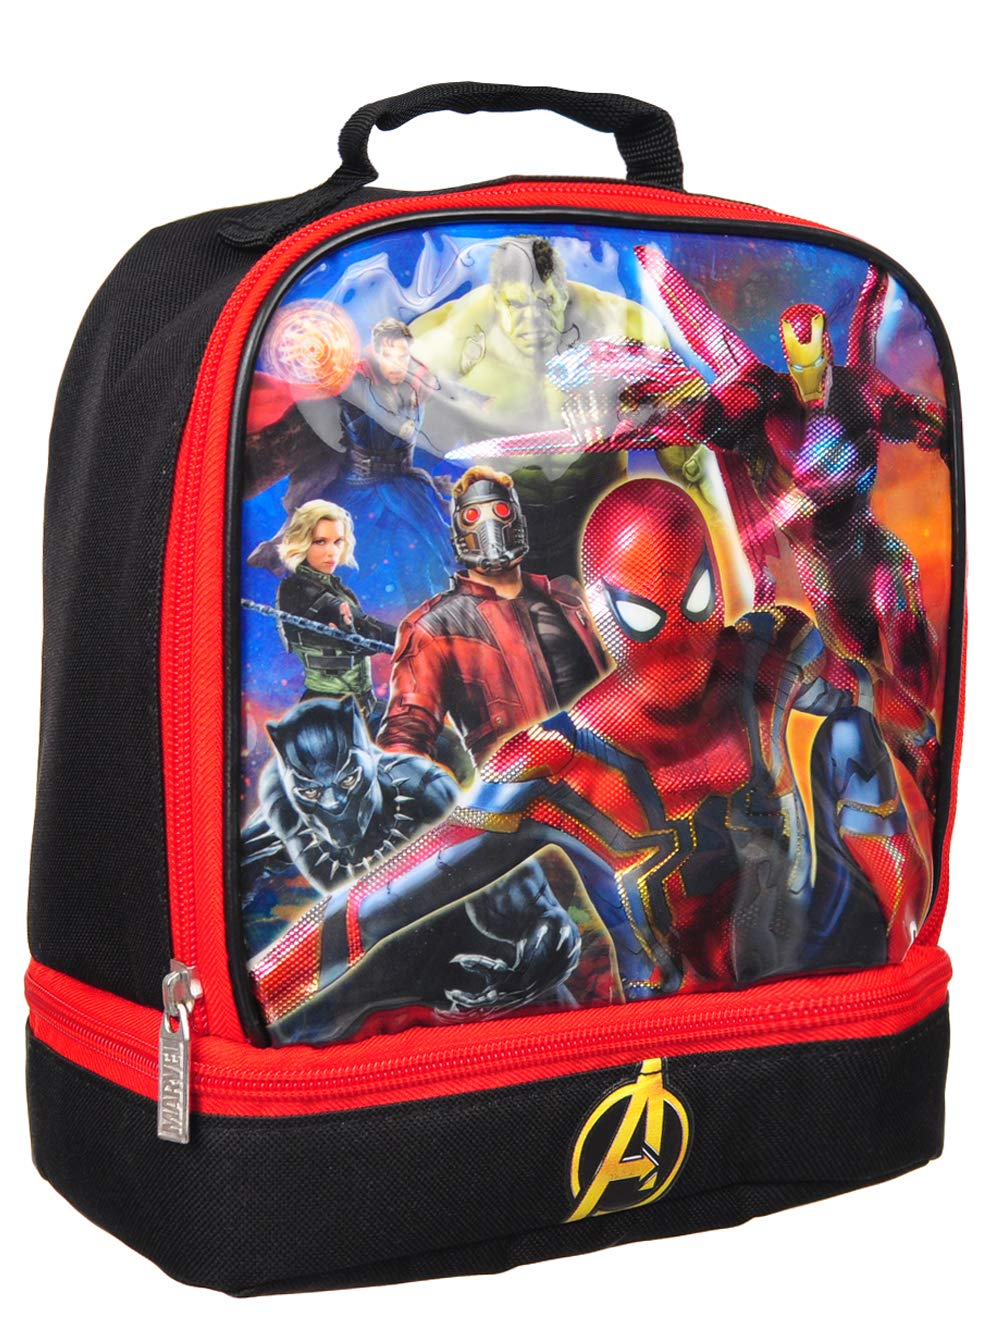 4SGM Marvel Avengers Captain America Superheroes Dual Insulated Lunch Box Lunchbox 10671